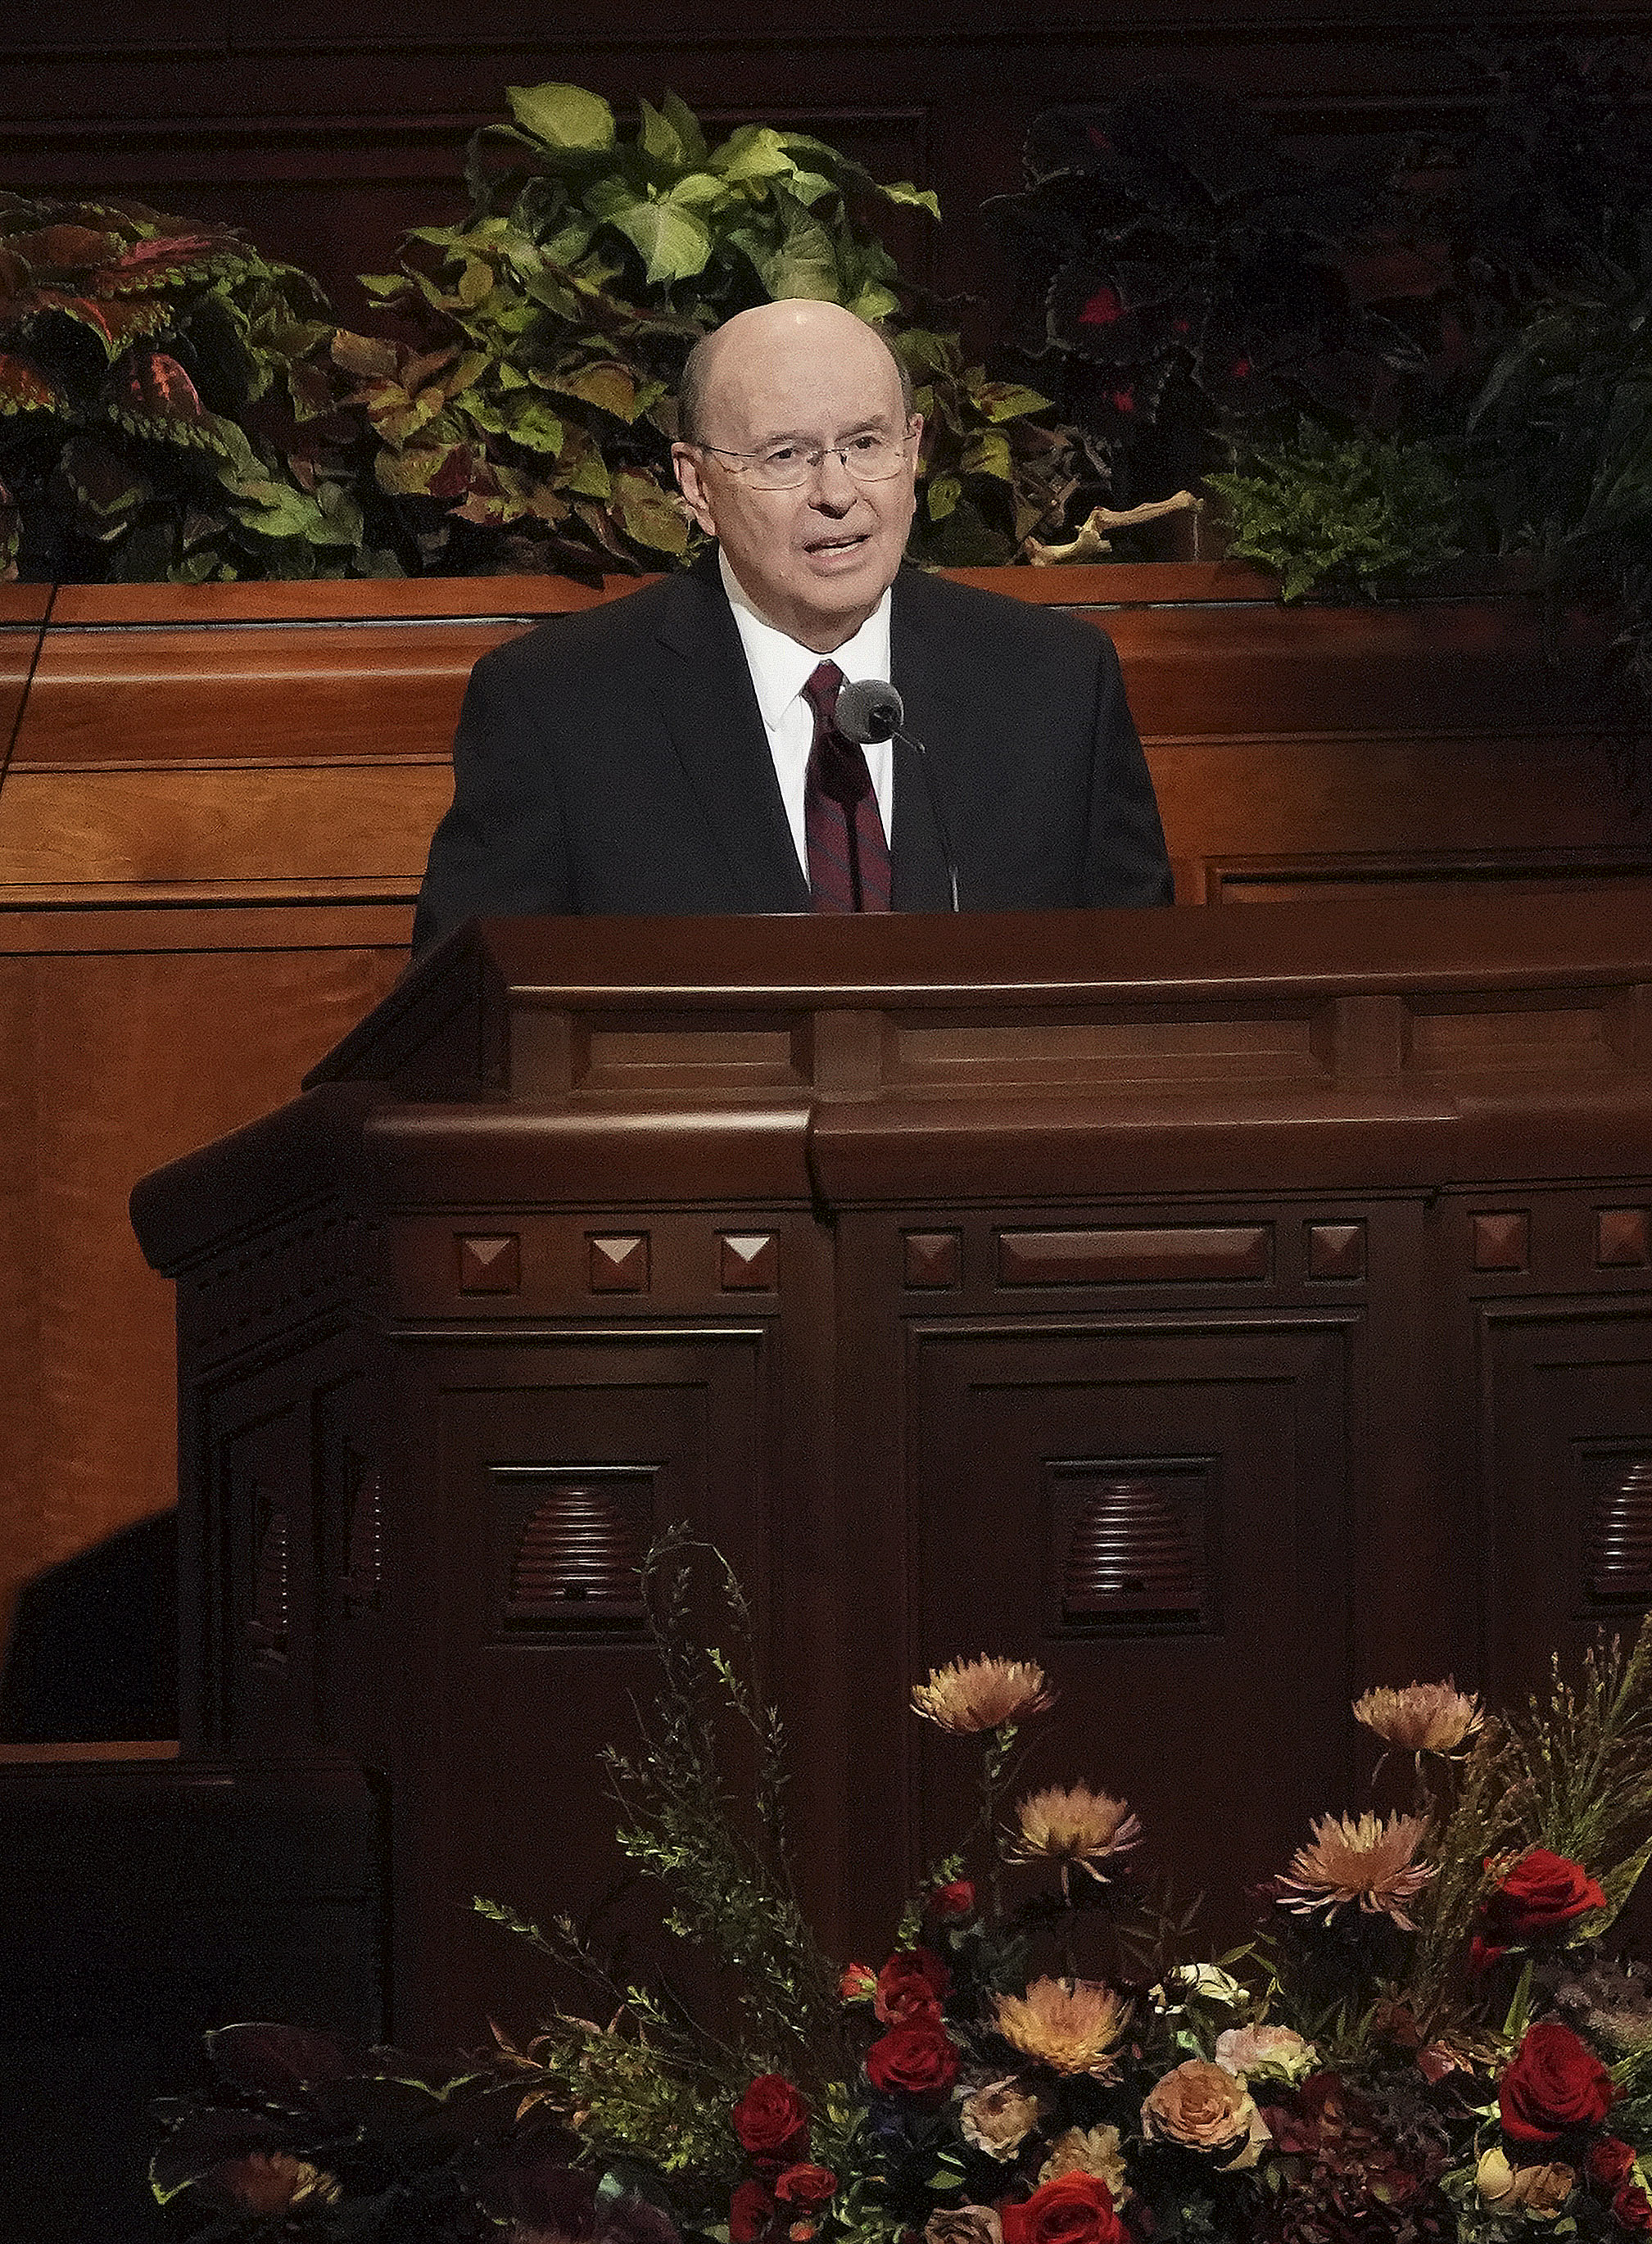 Elder Quentin L. Cook of the Quorum of the Twelve Apostles speaks during the Saturday afternoon session of the 189th Semiannual General Conference of The Church of Jesus Christ of Latter-day Saints in the Conference Center in Salt Lake City on Saturday, Oct. 5, 2019.